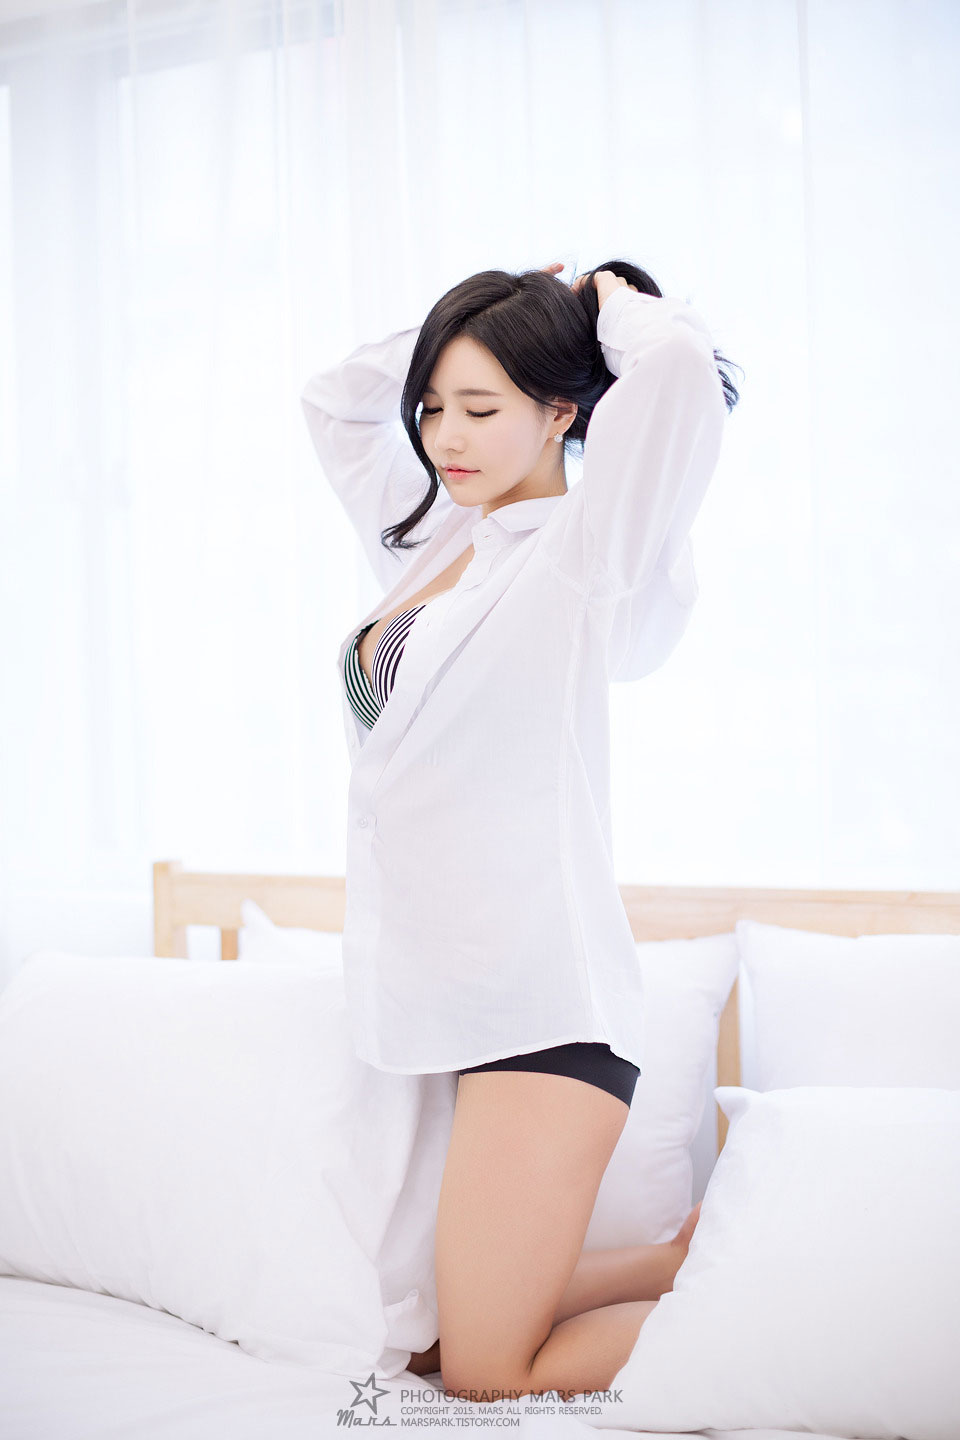 Model Kang Ye Bin portrait photoshoot